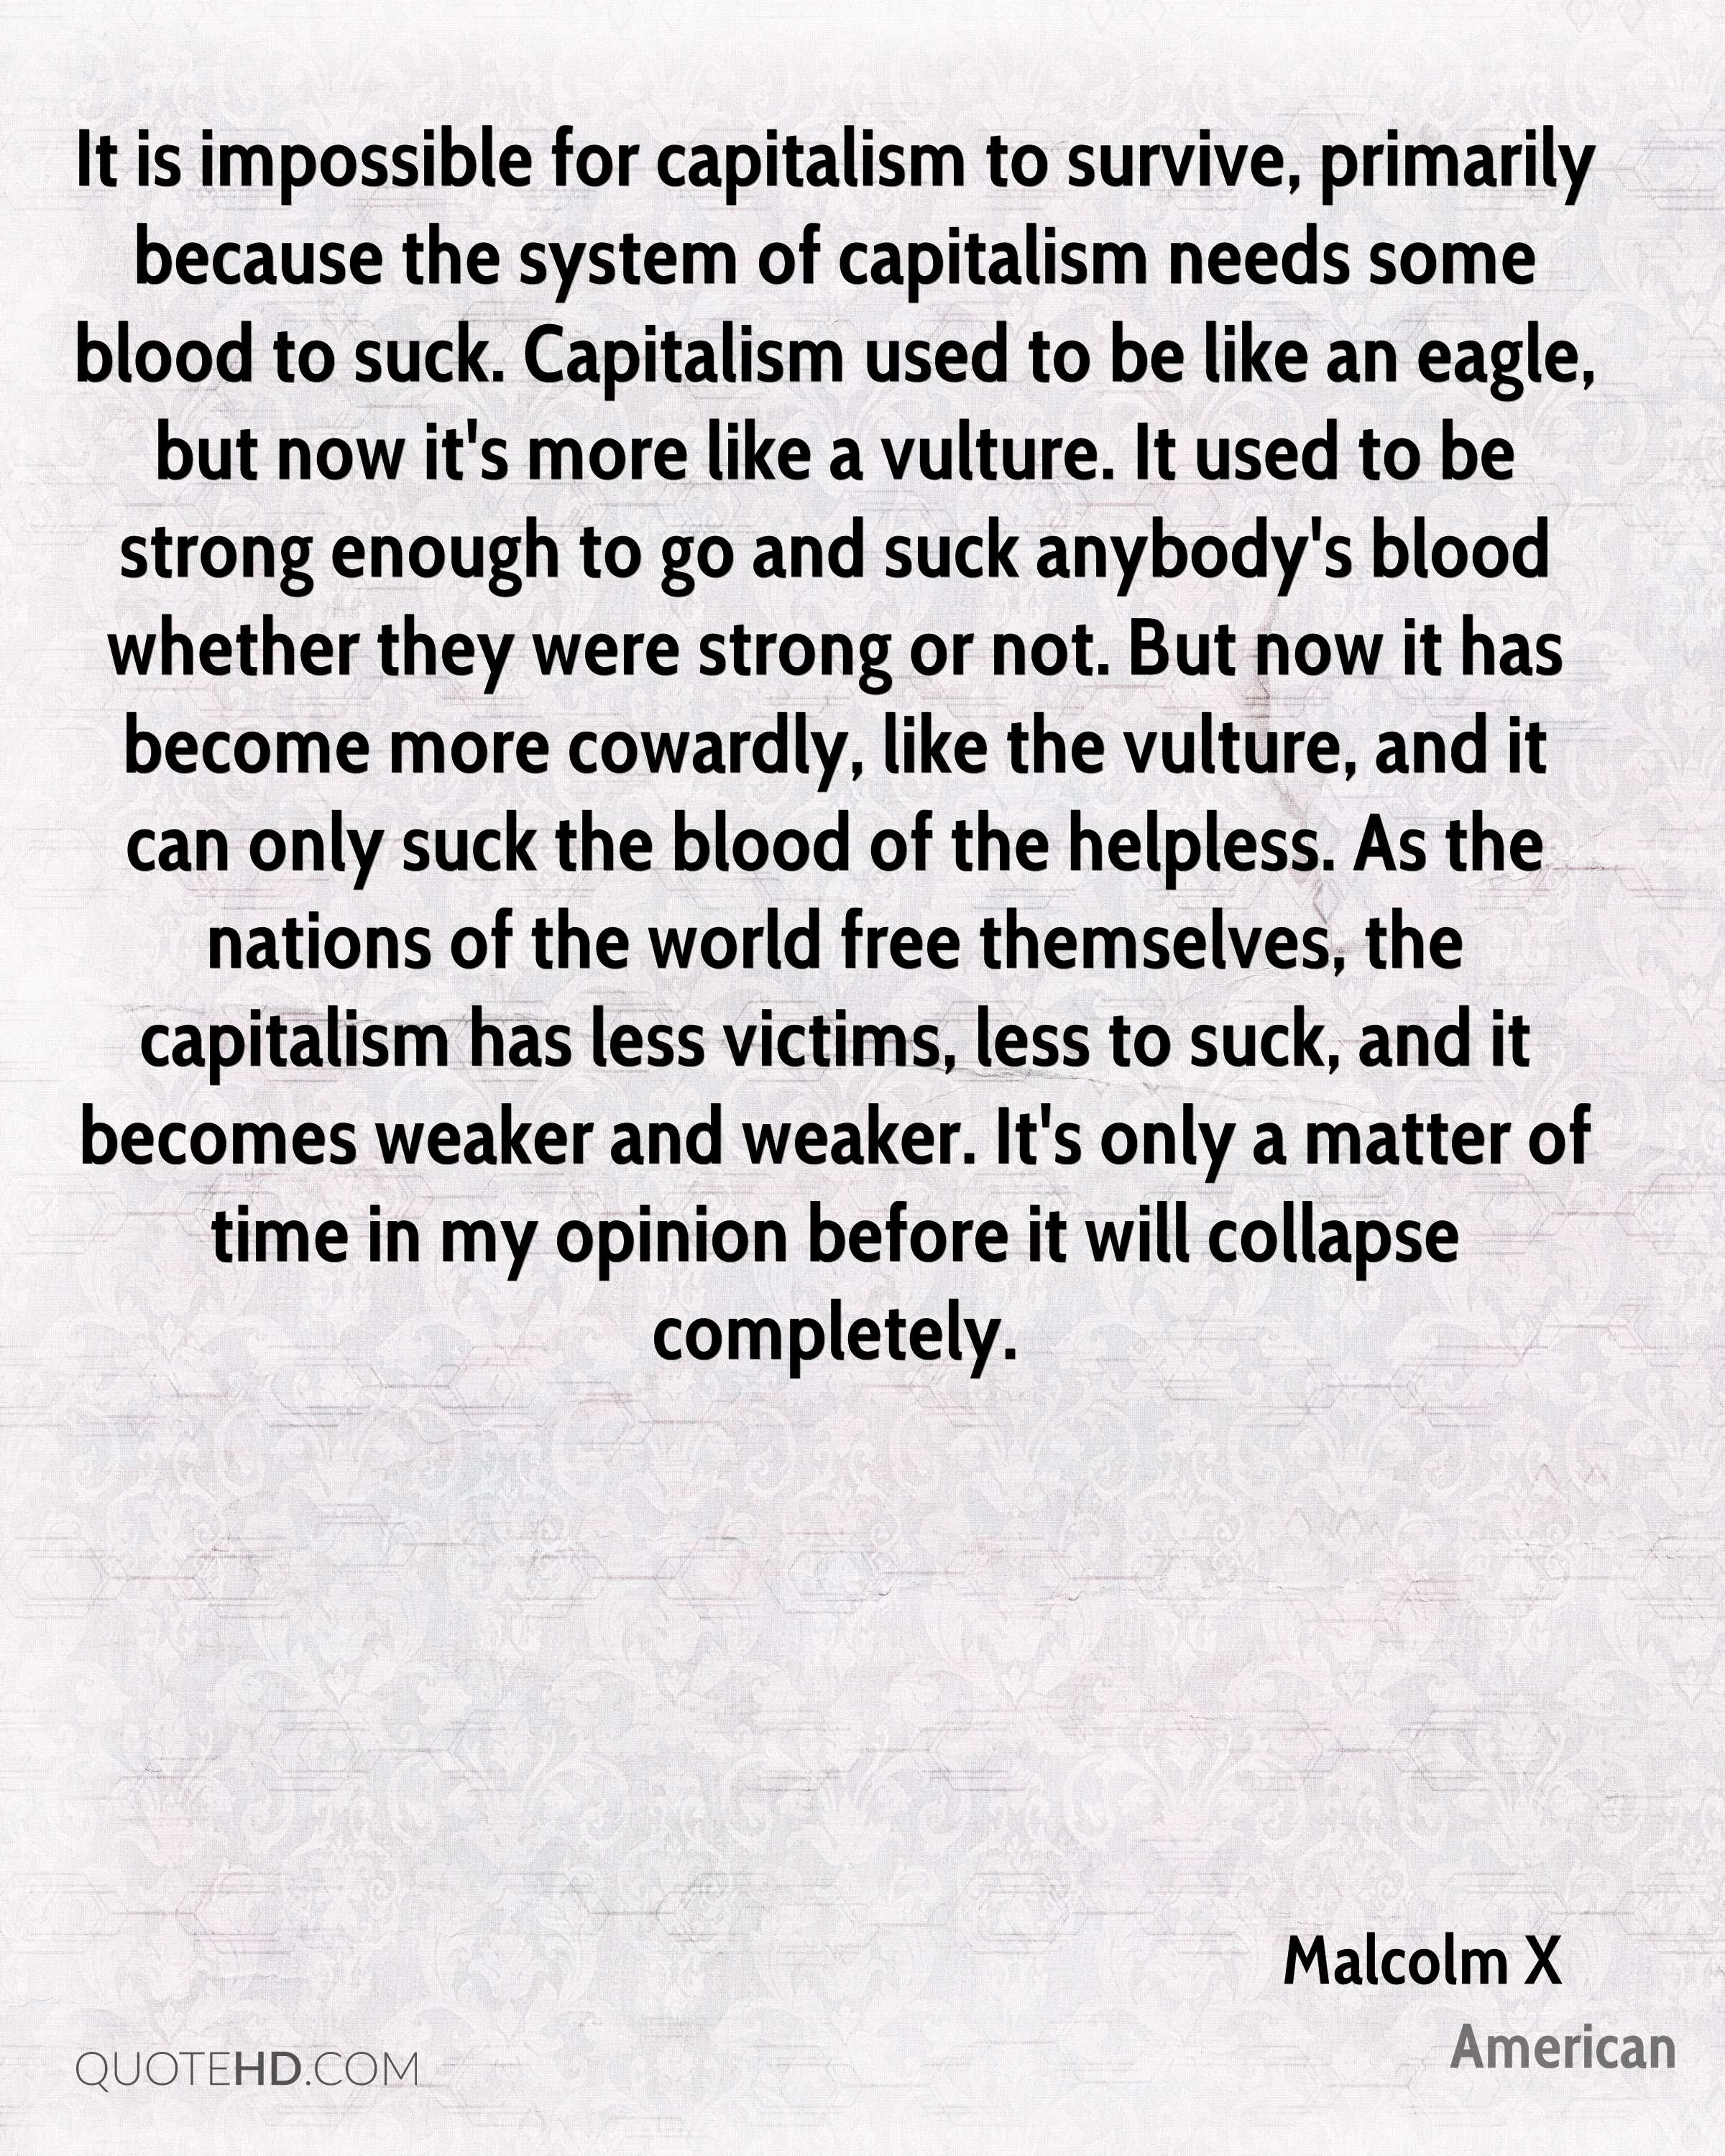 It is impossible for capitalism to survive, primarily because the system of capitalism needs some blood to suck. Capitalism used to be like an eagle, but now it's more like a vulture. It used to be strong enough to go and suck anybody's blood whether they were strong or not. But now it has become more cowardly, like the vulture, and it can only suck the blood of the helpless. As the nations of the world free themselves, the capitalism has less victims, less to suck, and it becomes weaker and weaker. It's only a matter of time in my opinion before it will collapse completely.